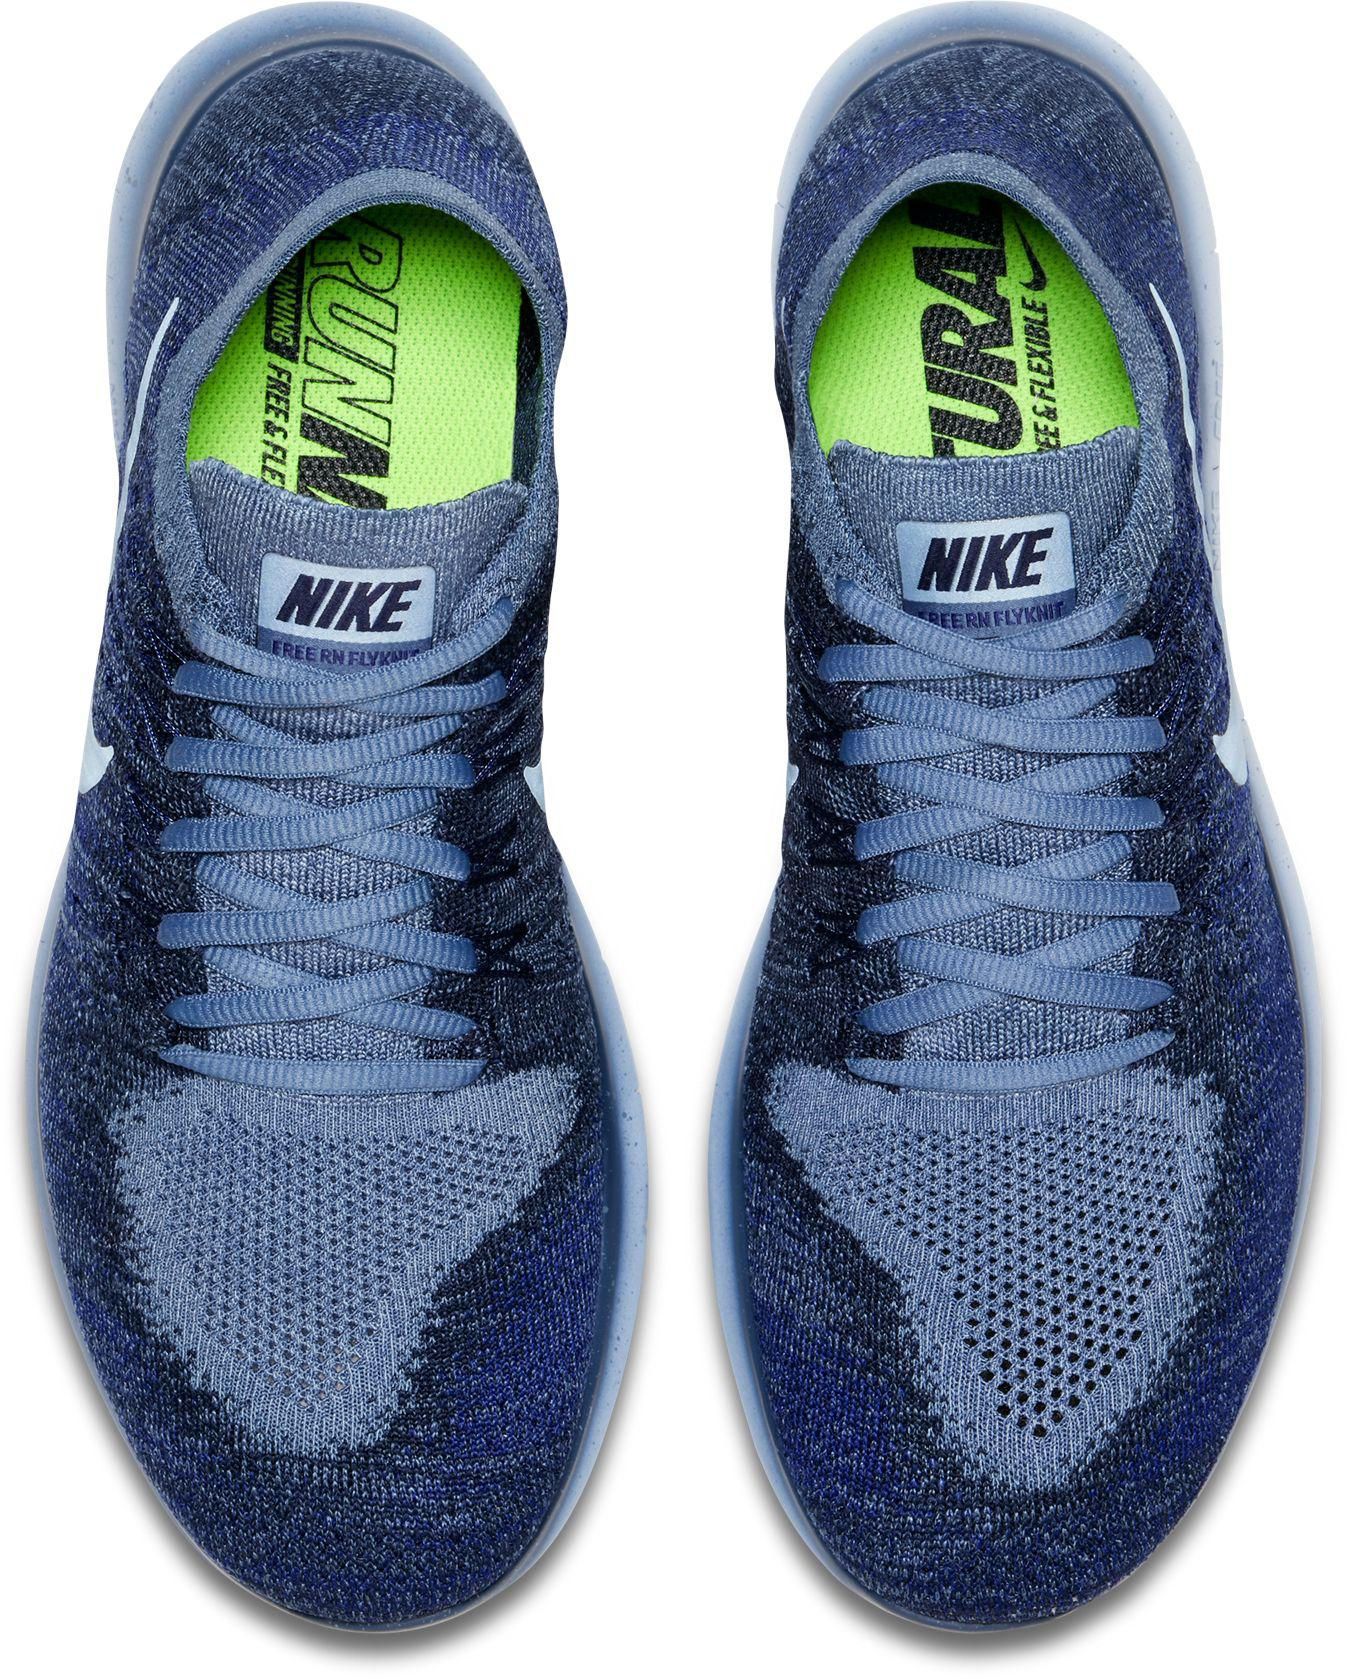 462003d27cde Lyst - Nike Free Rn Flyknit 2017 Running Shoes in Blue for Men